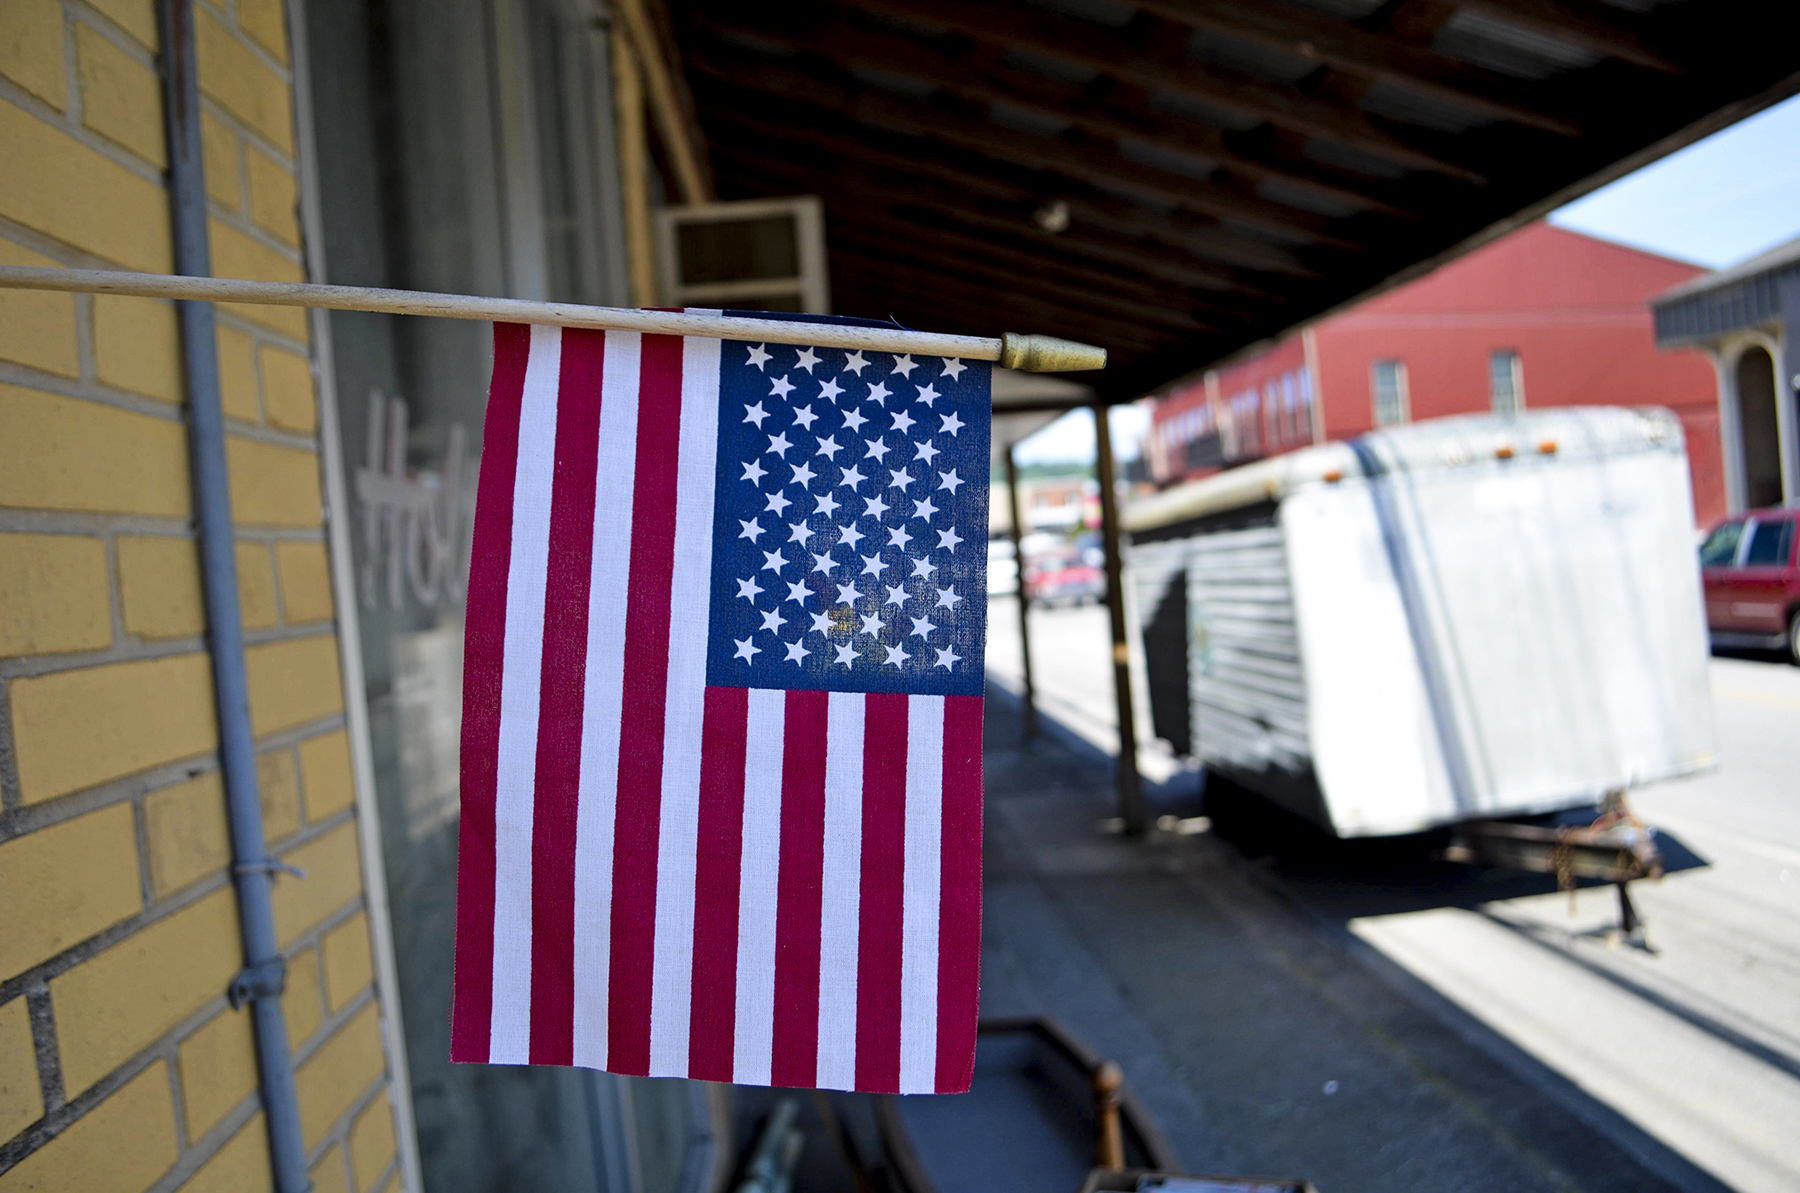 An American flag decorates a Clay County, Tennessee, street of empty buildings and economically struggling small businesses. The county has a 24 percent poverty rate. (Lian Bunny/News21)